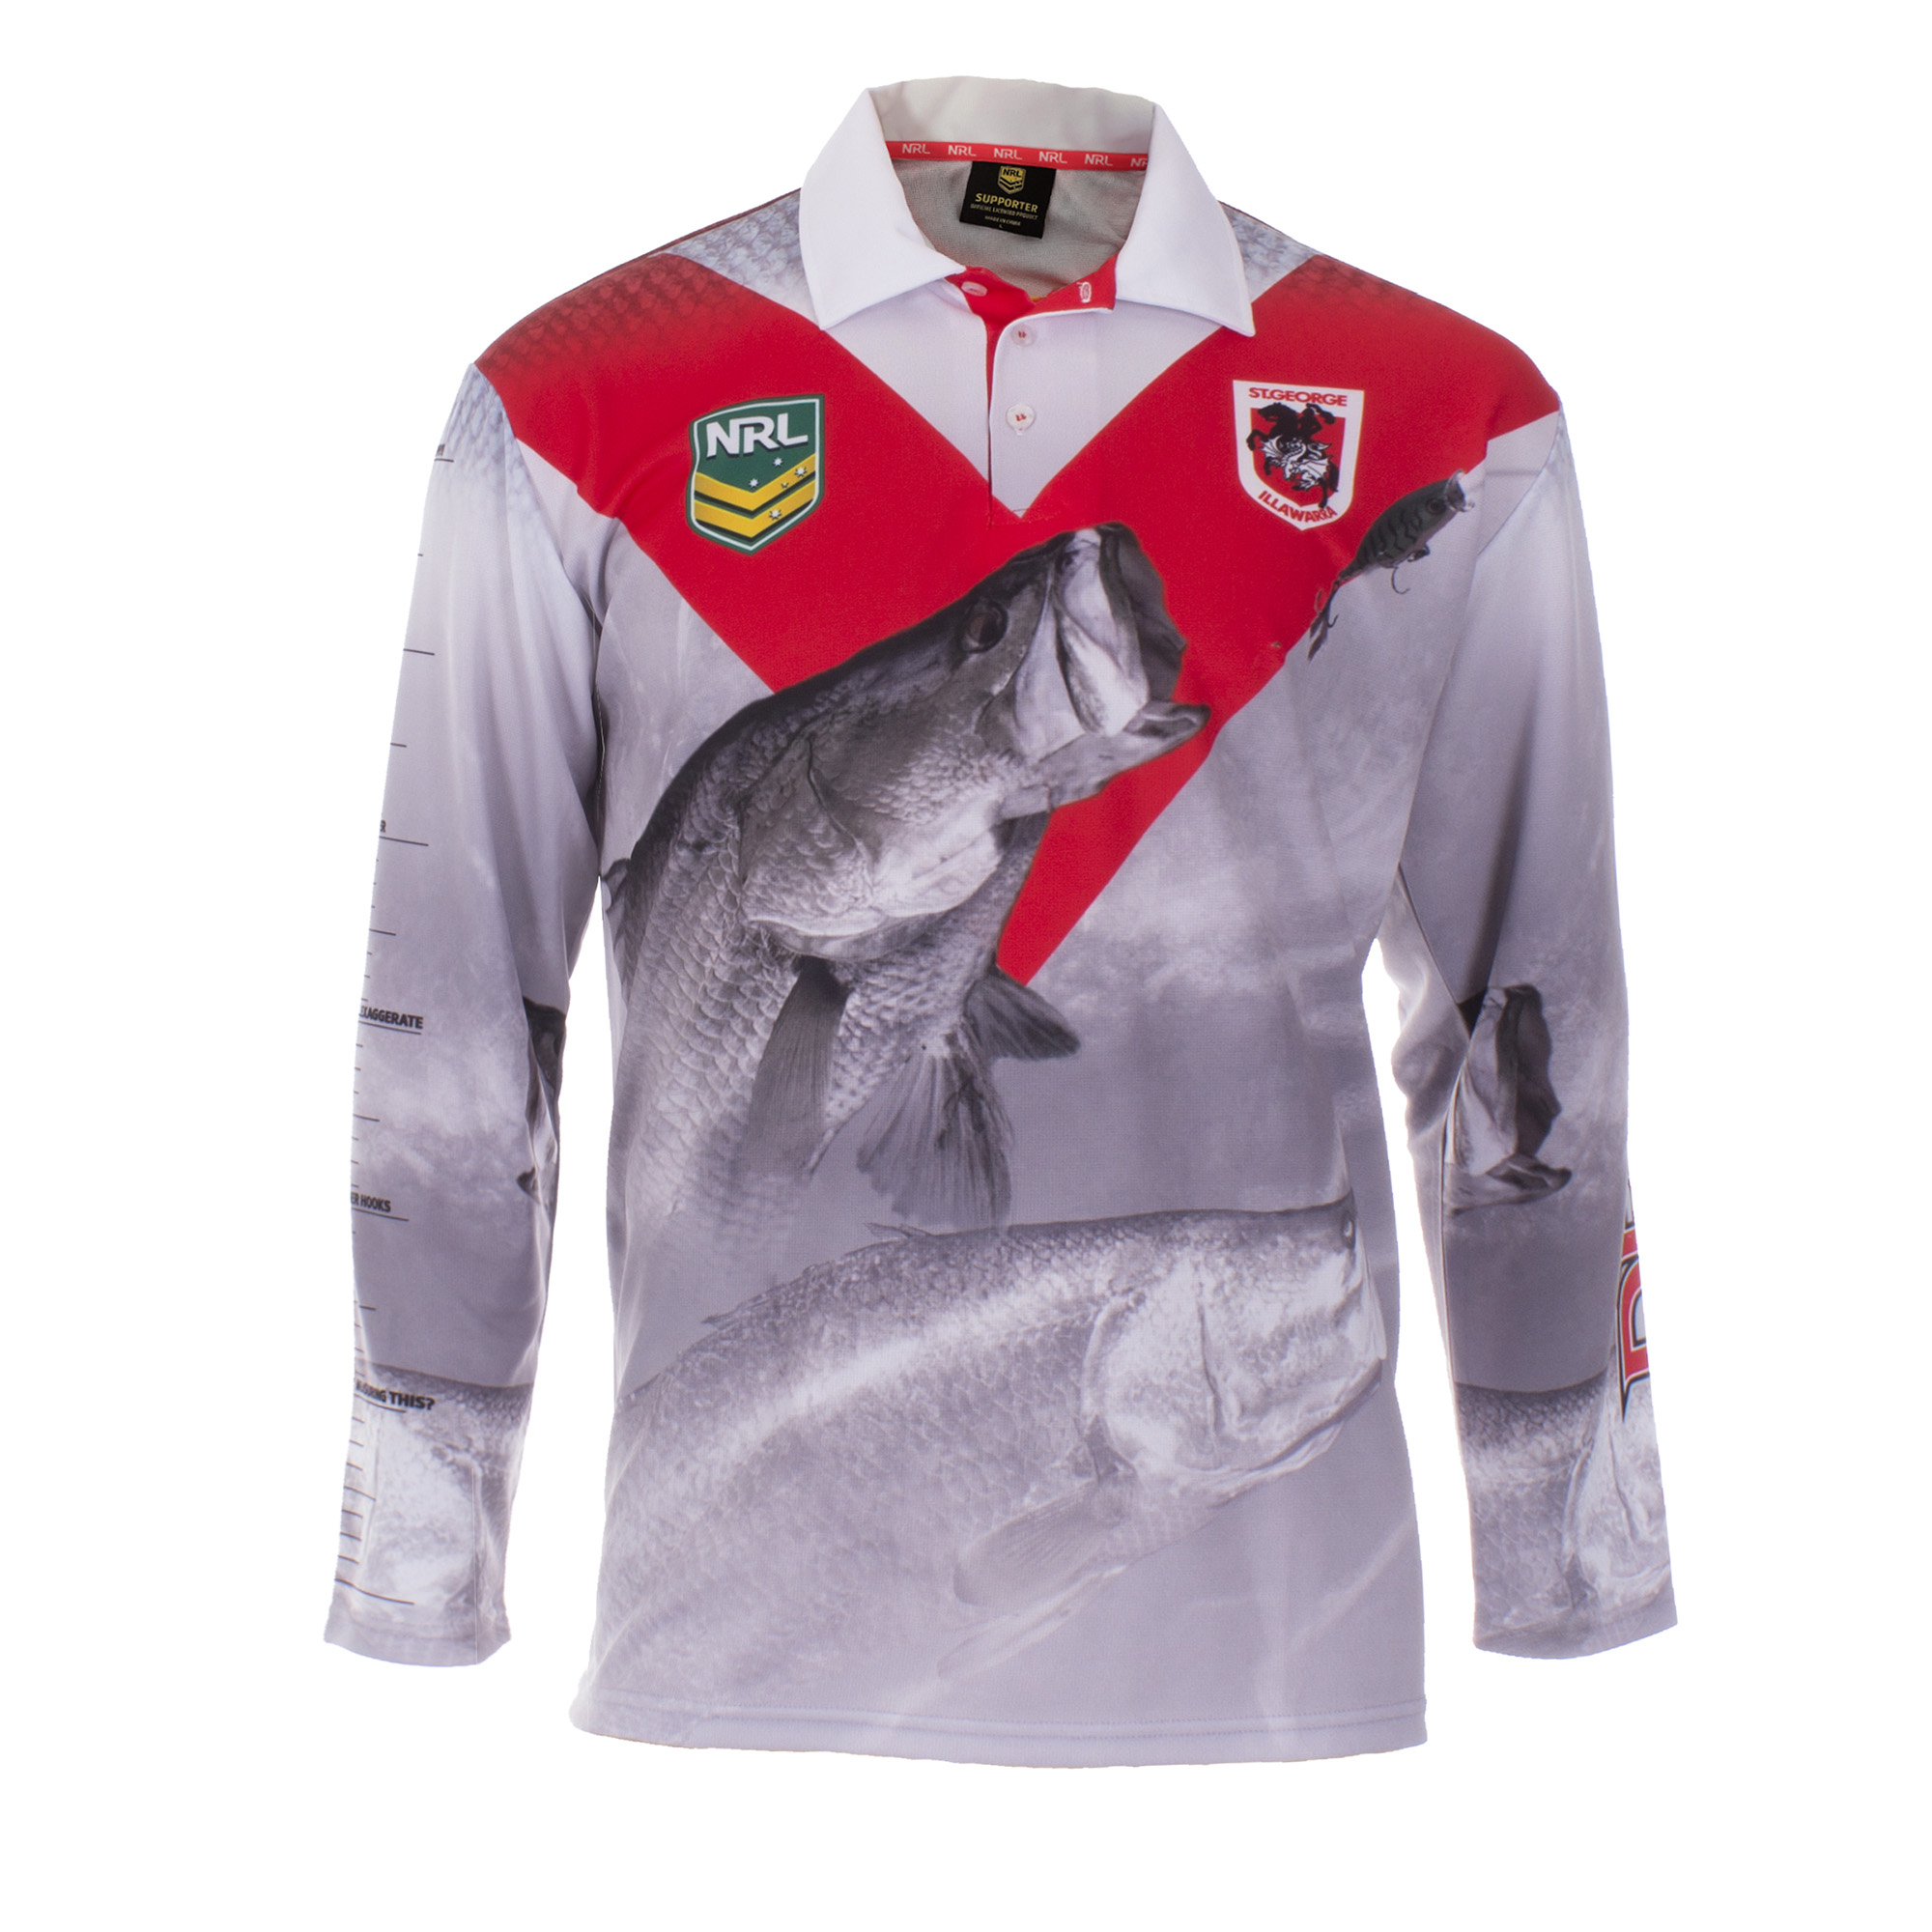 Personalised NRL Dragons Fishing Shirt - Front View